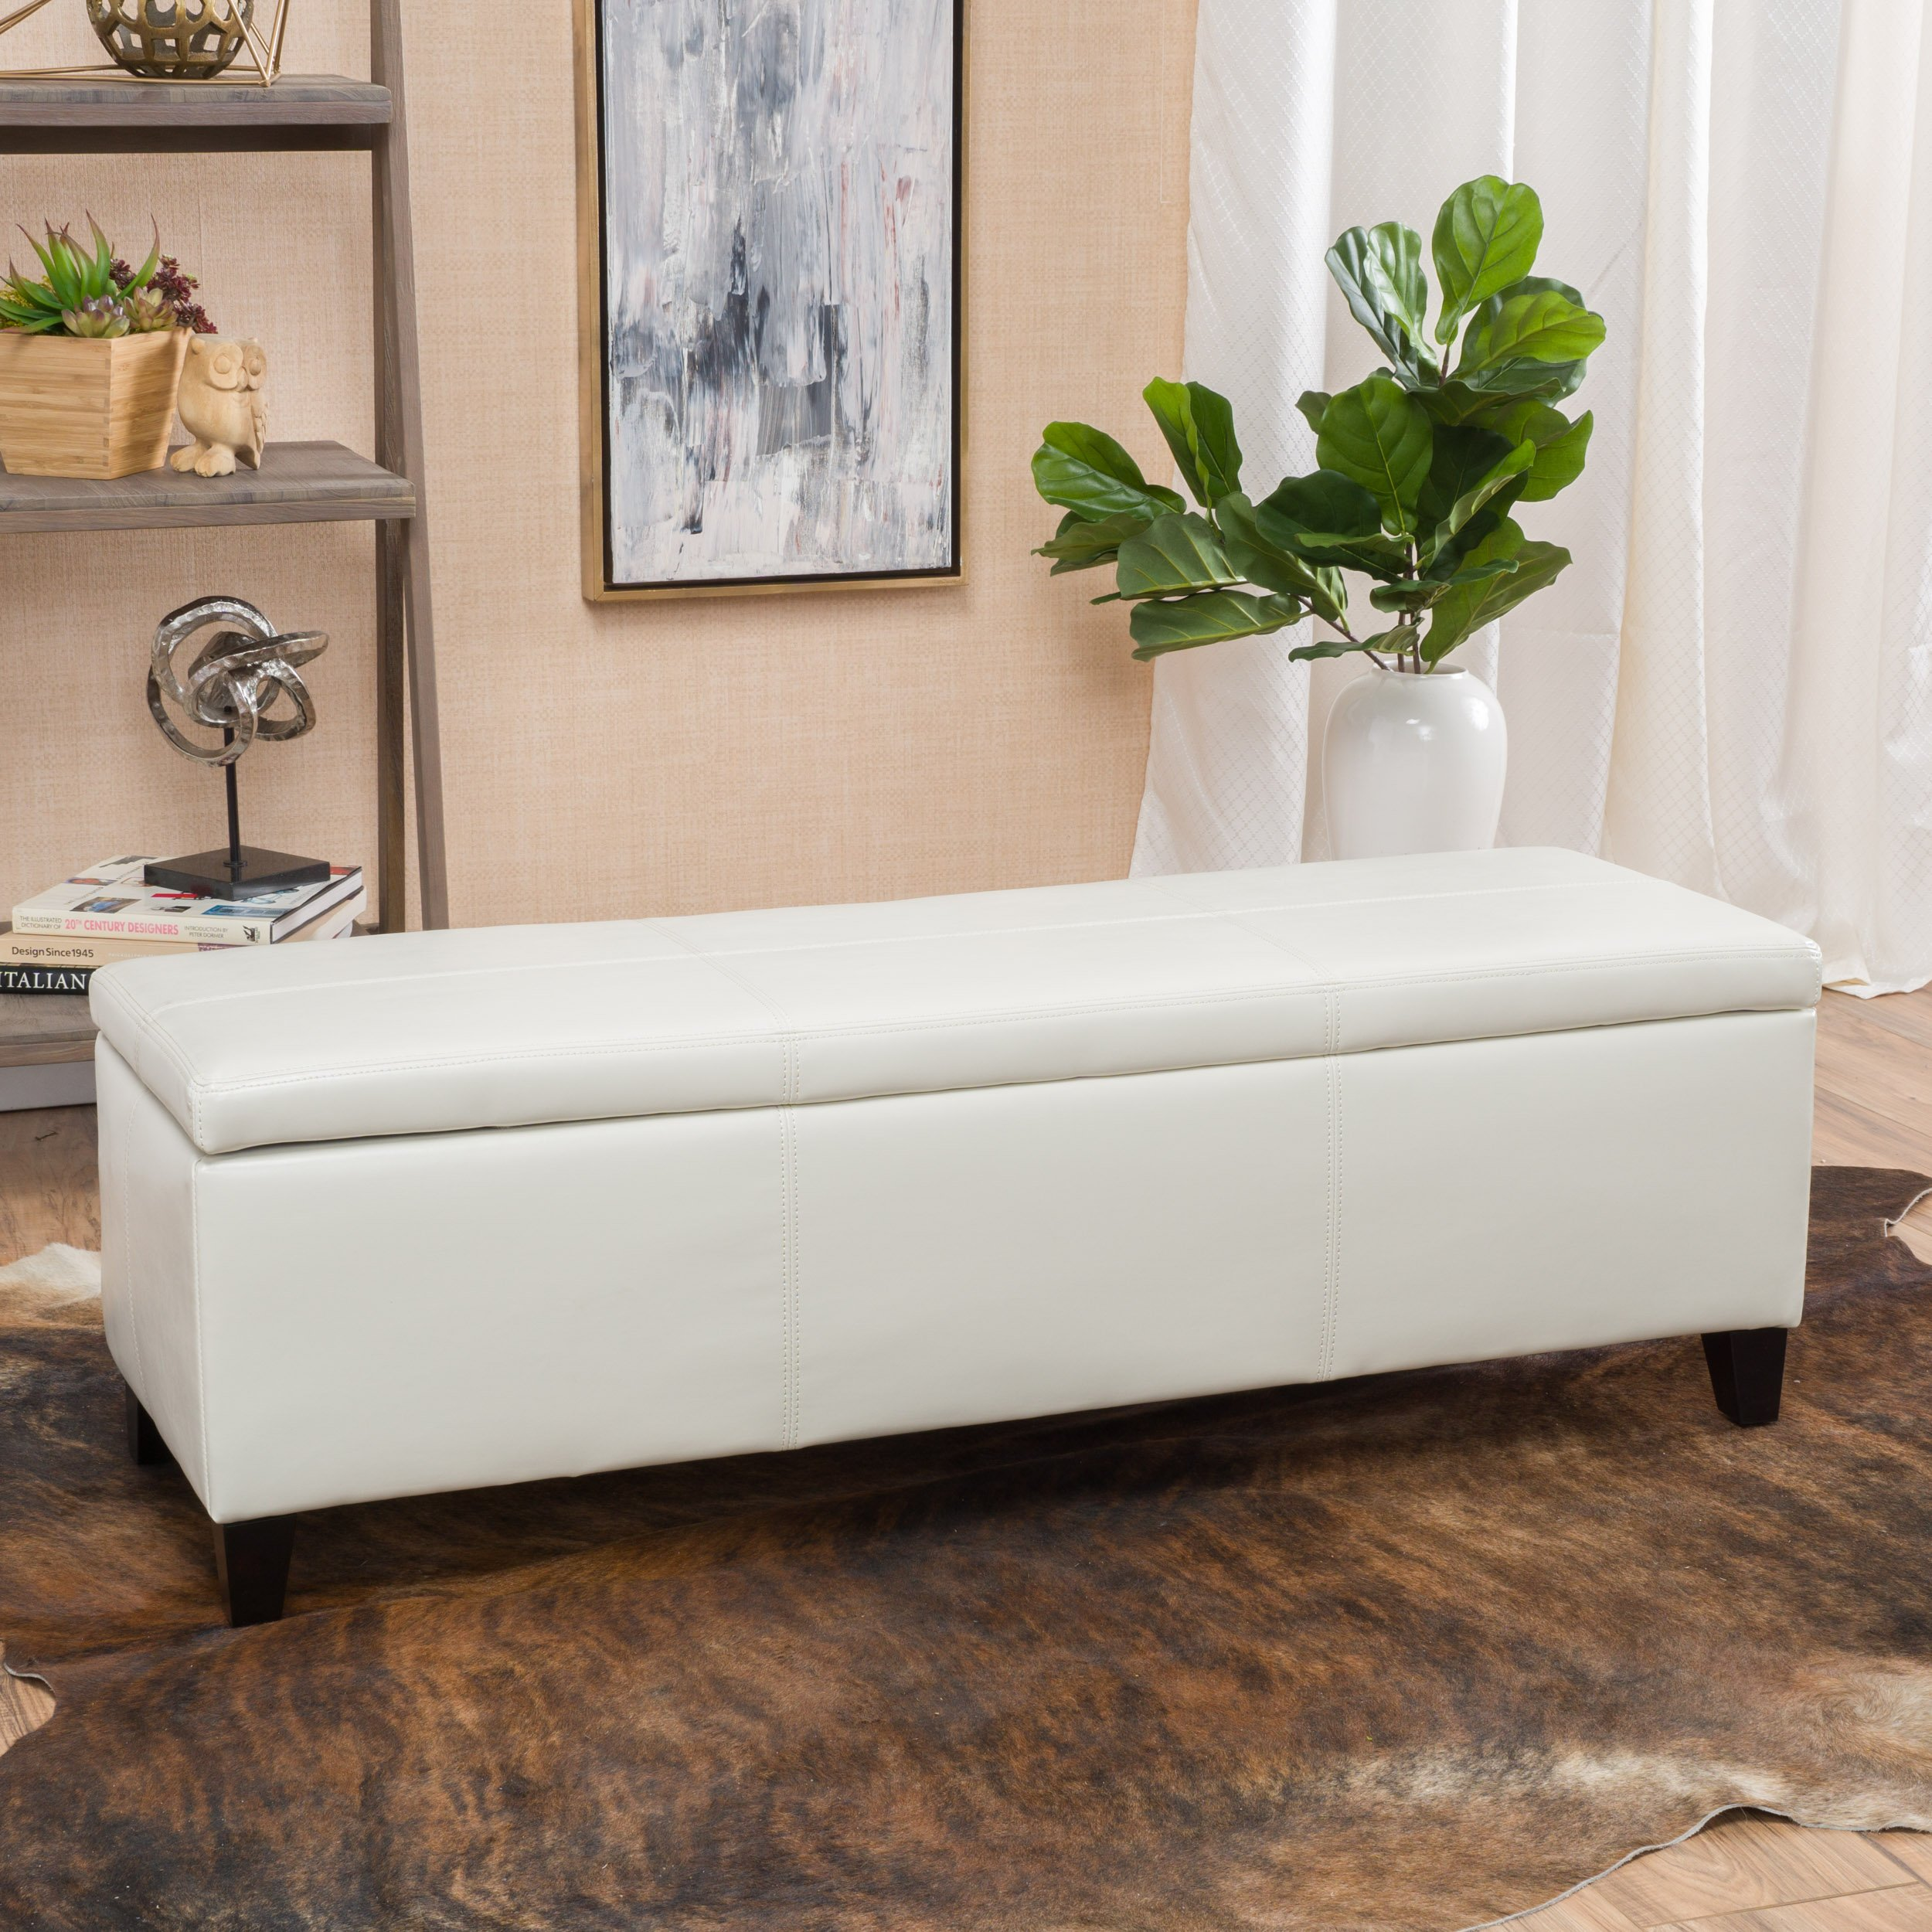 Christopher Knight Home 296846 Living Skyler Off-White Leather Storage Ottoman Bench, Ivory by Christopher Knight Home